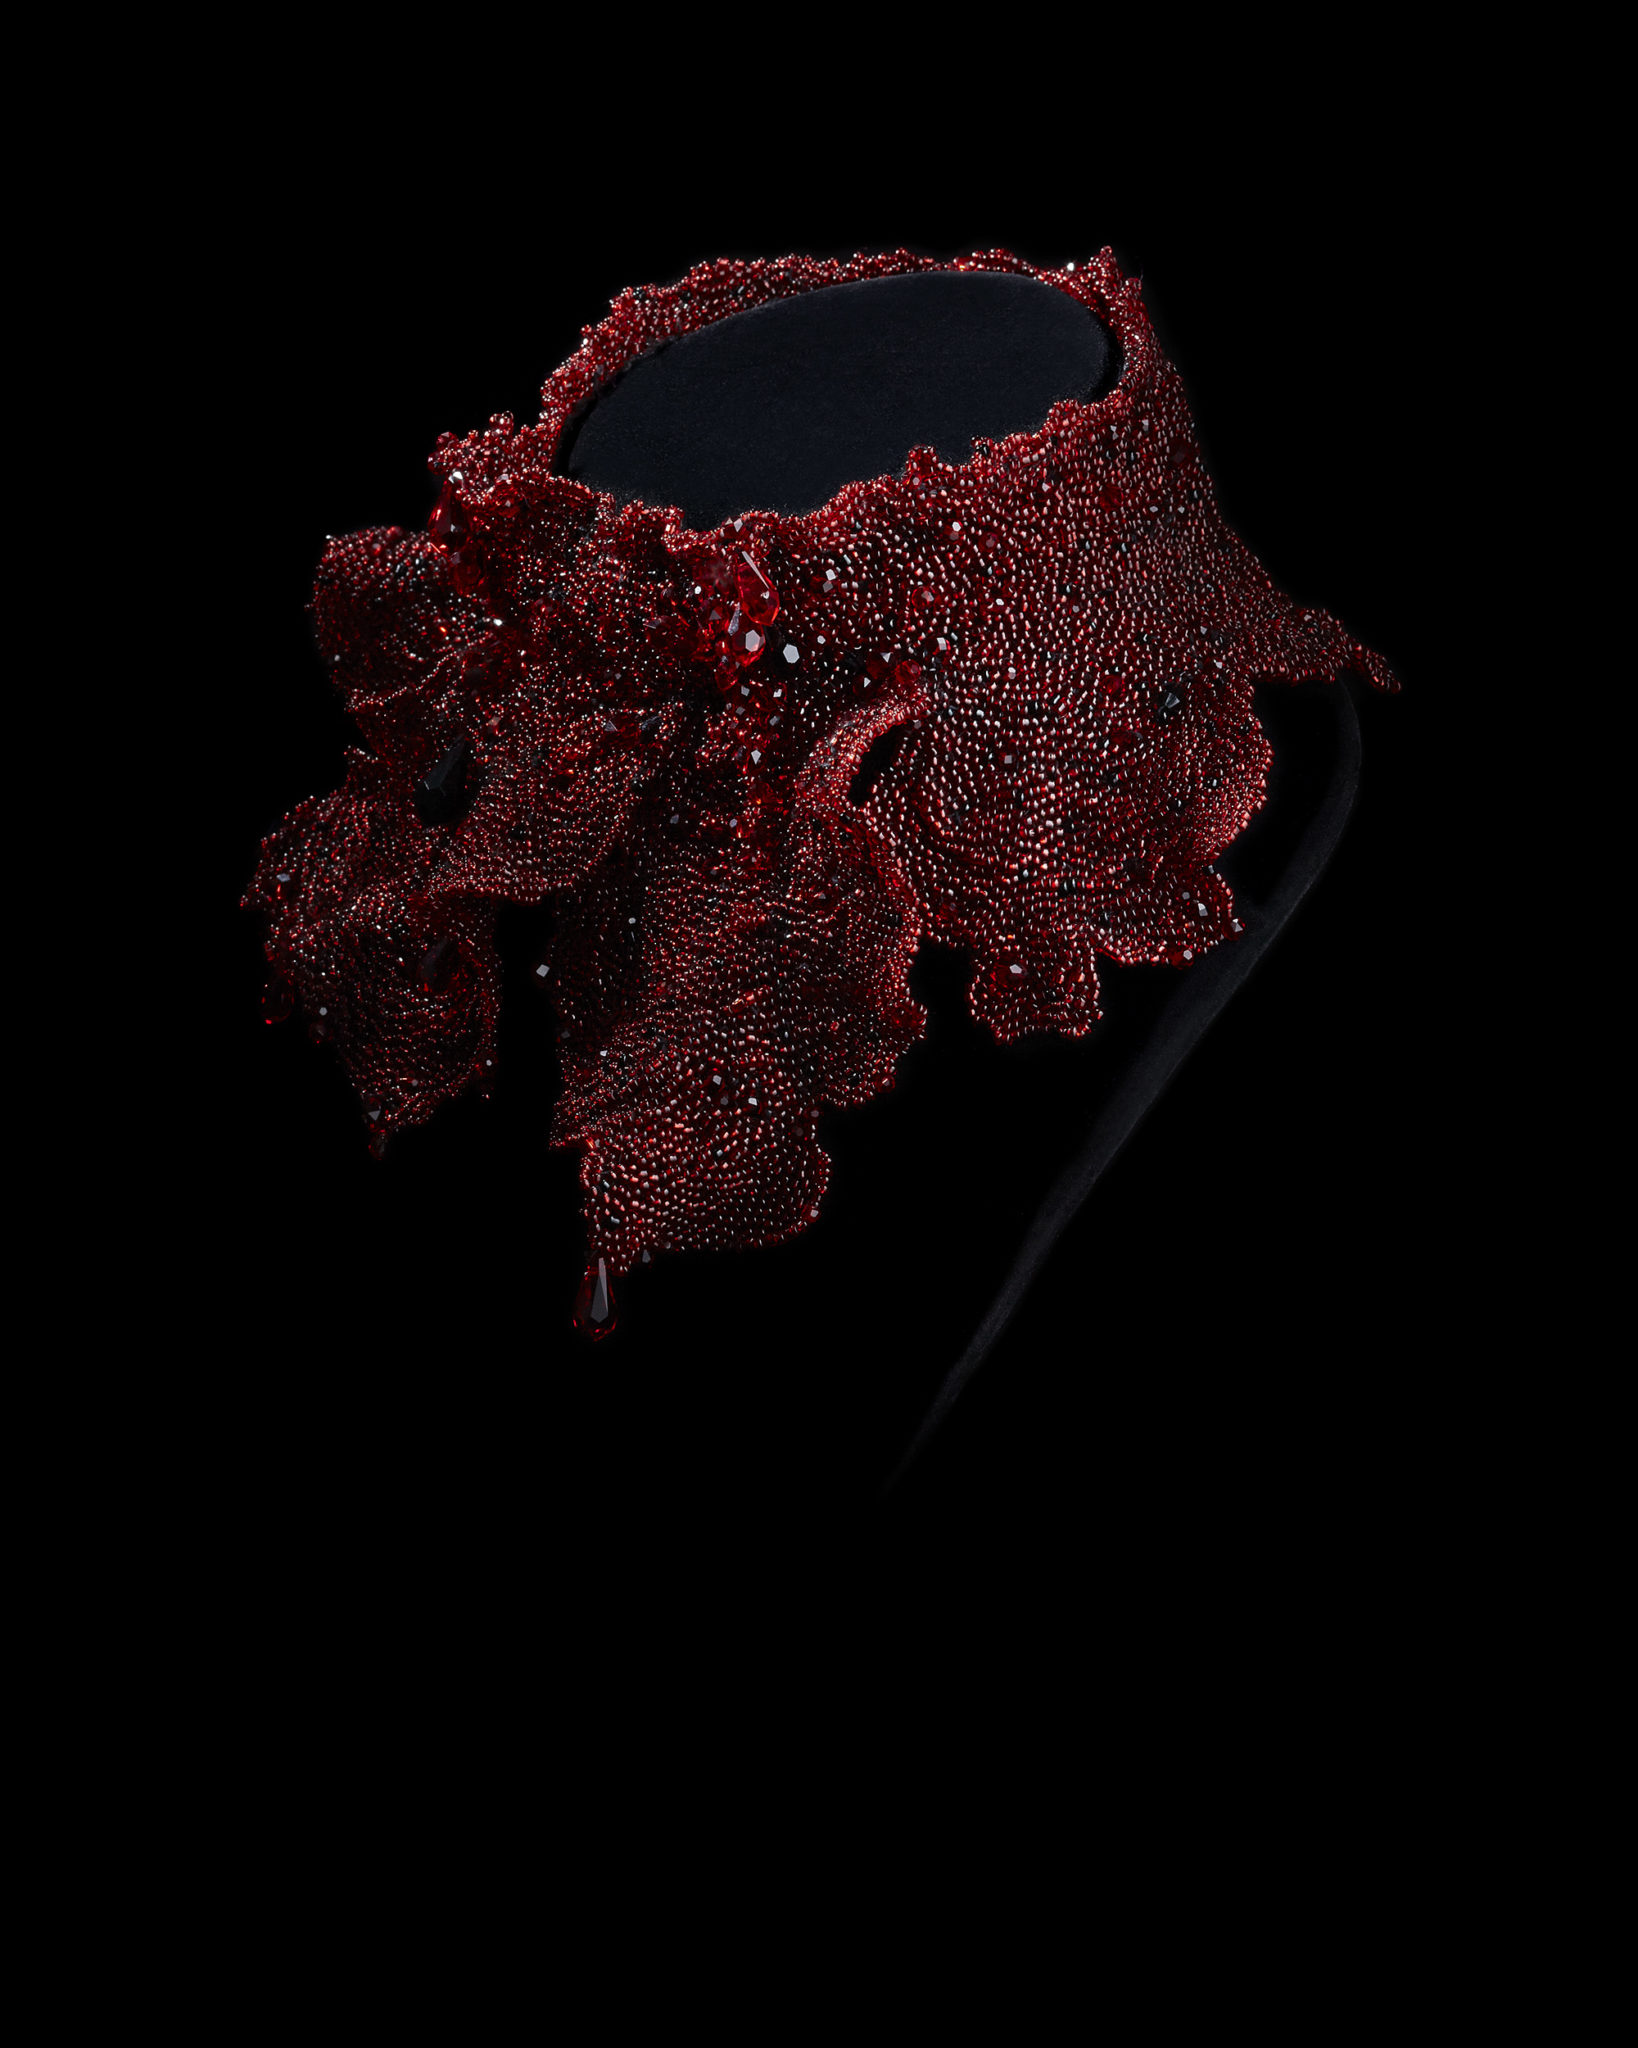 red beaded necklace on a black bust form on a black background